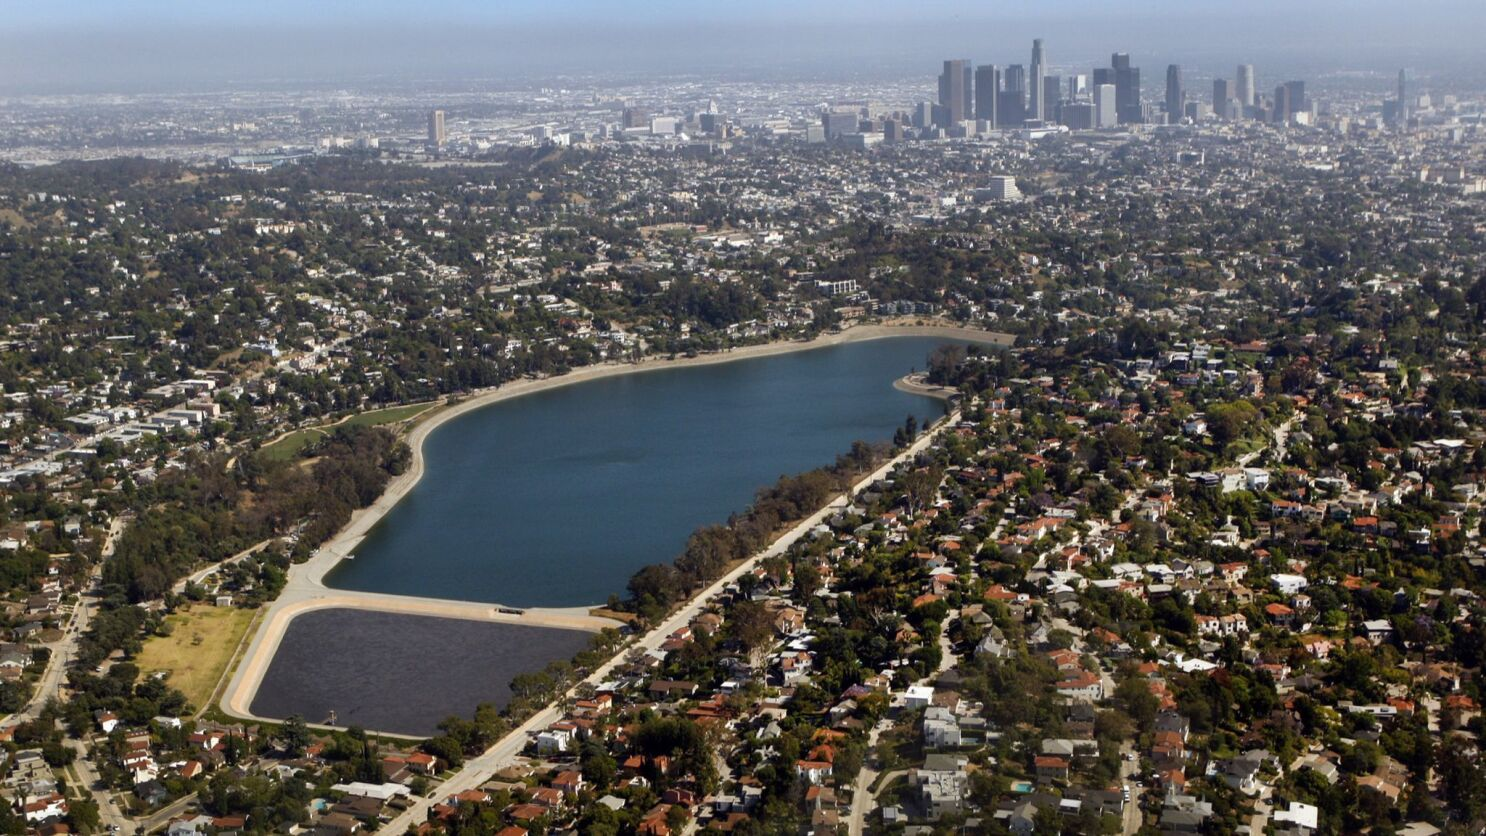 Must Reads: California's population growth is the slowest in